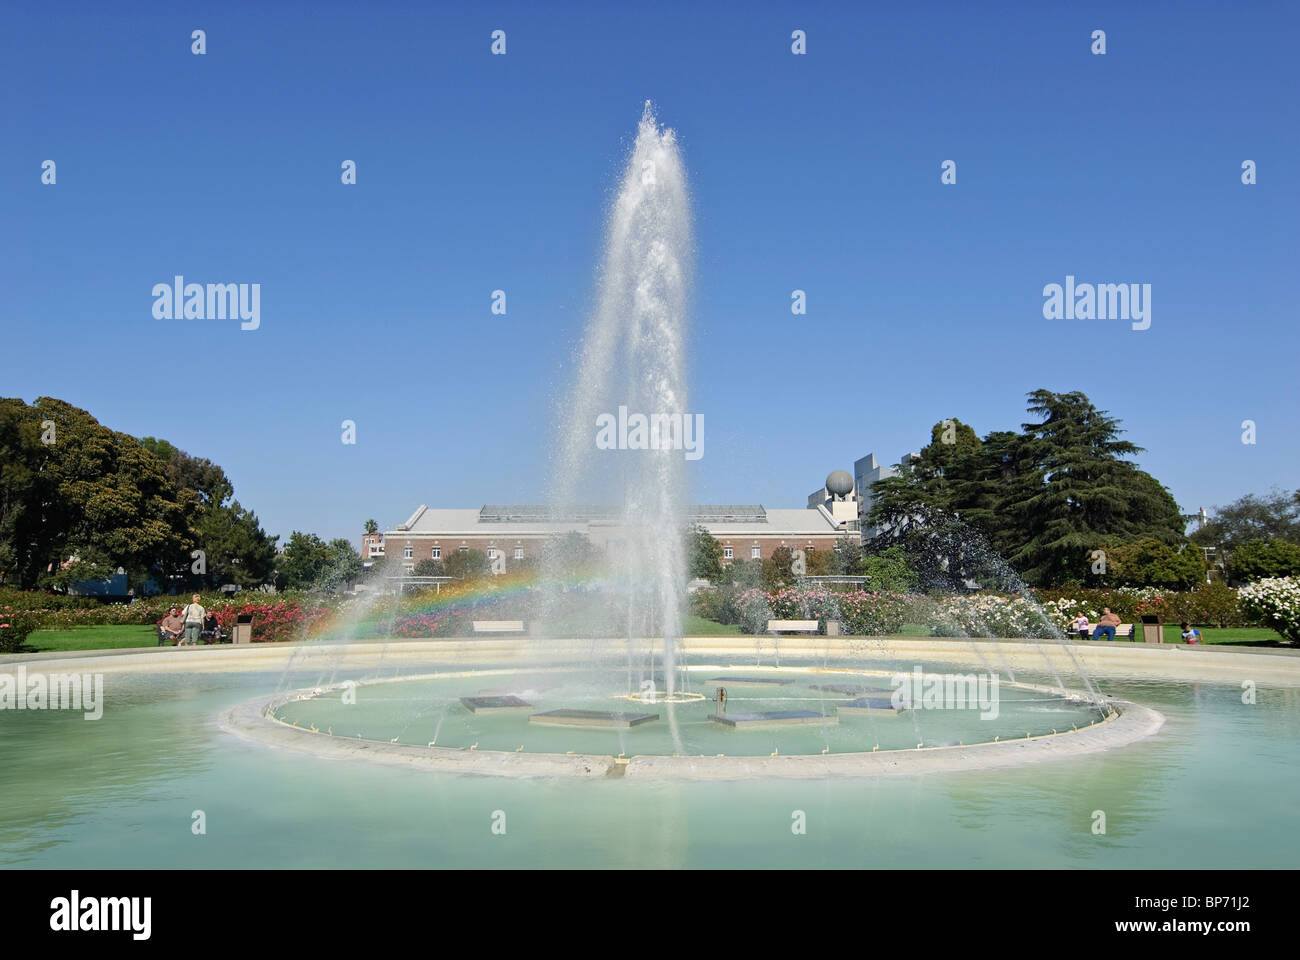 Central fountain of the Exposition Park Rose Garden in Los Angeles, CA. - Stock Image